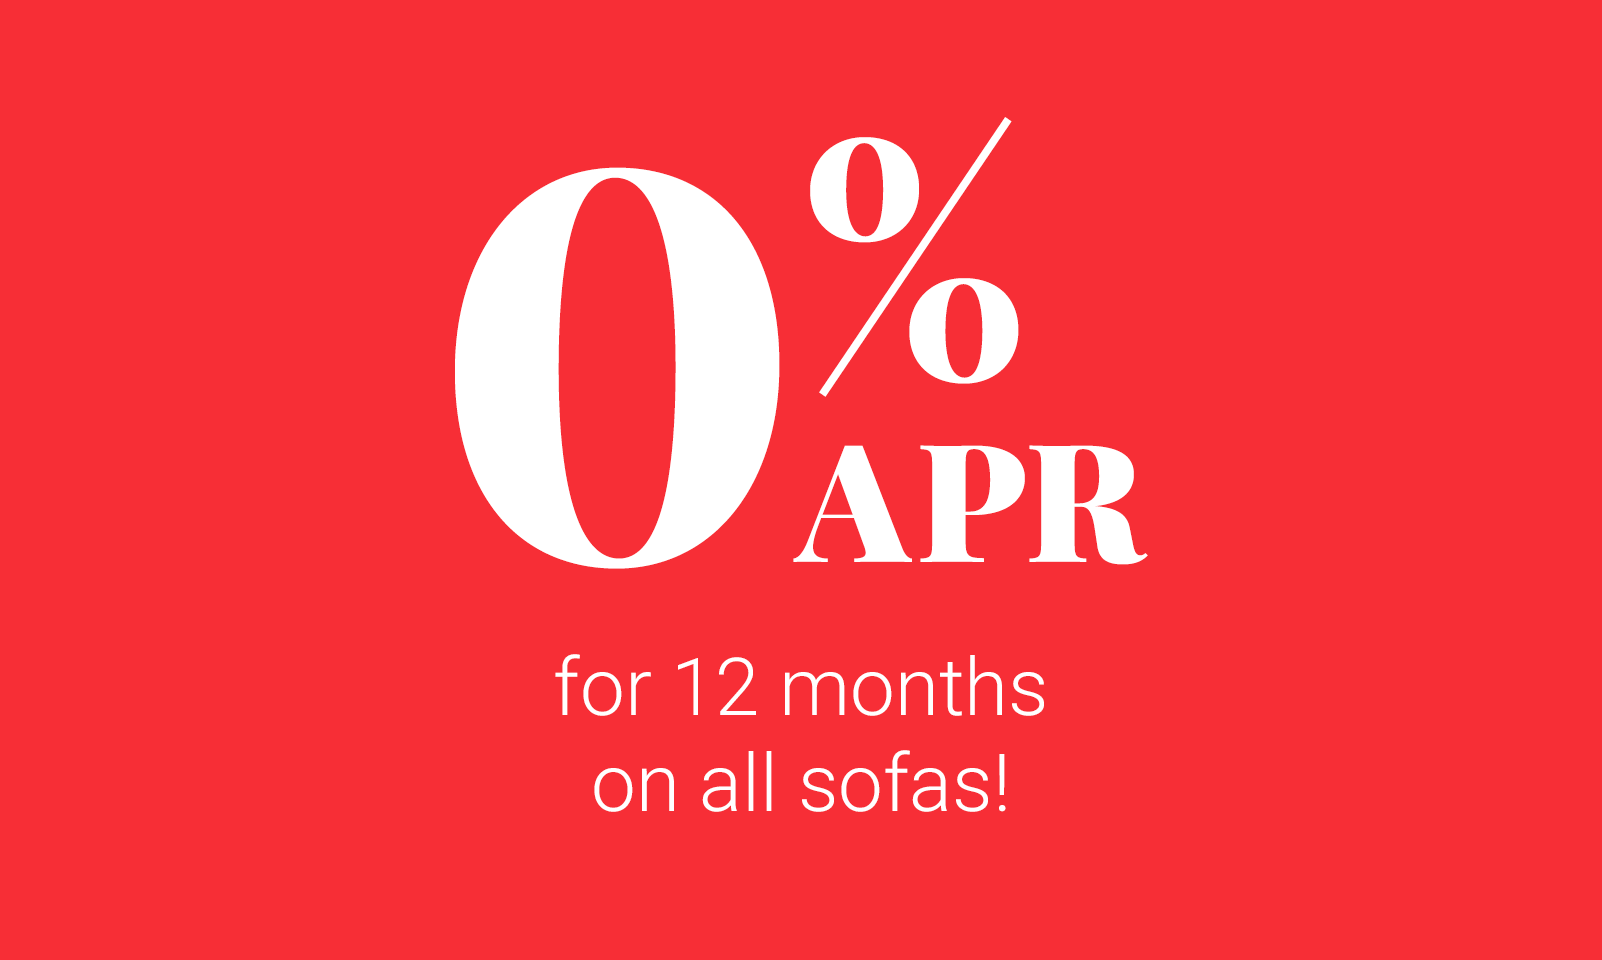 0% APR for 12 months on all sofas!